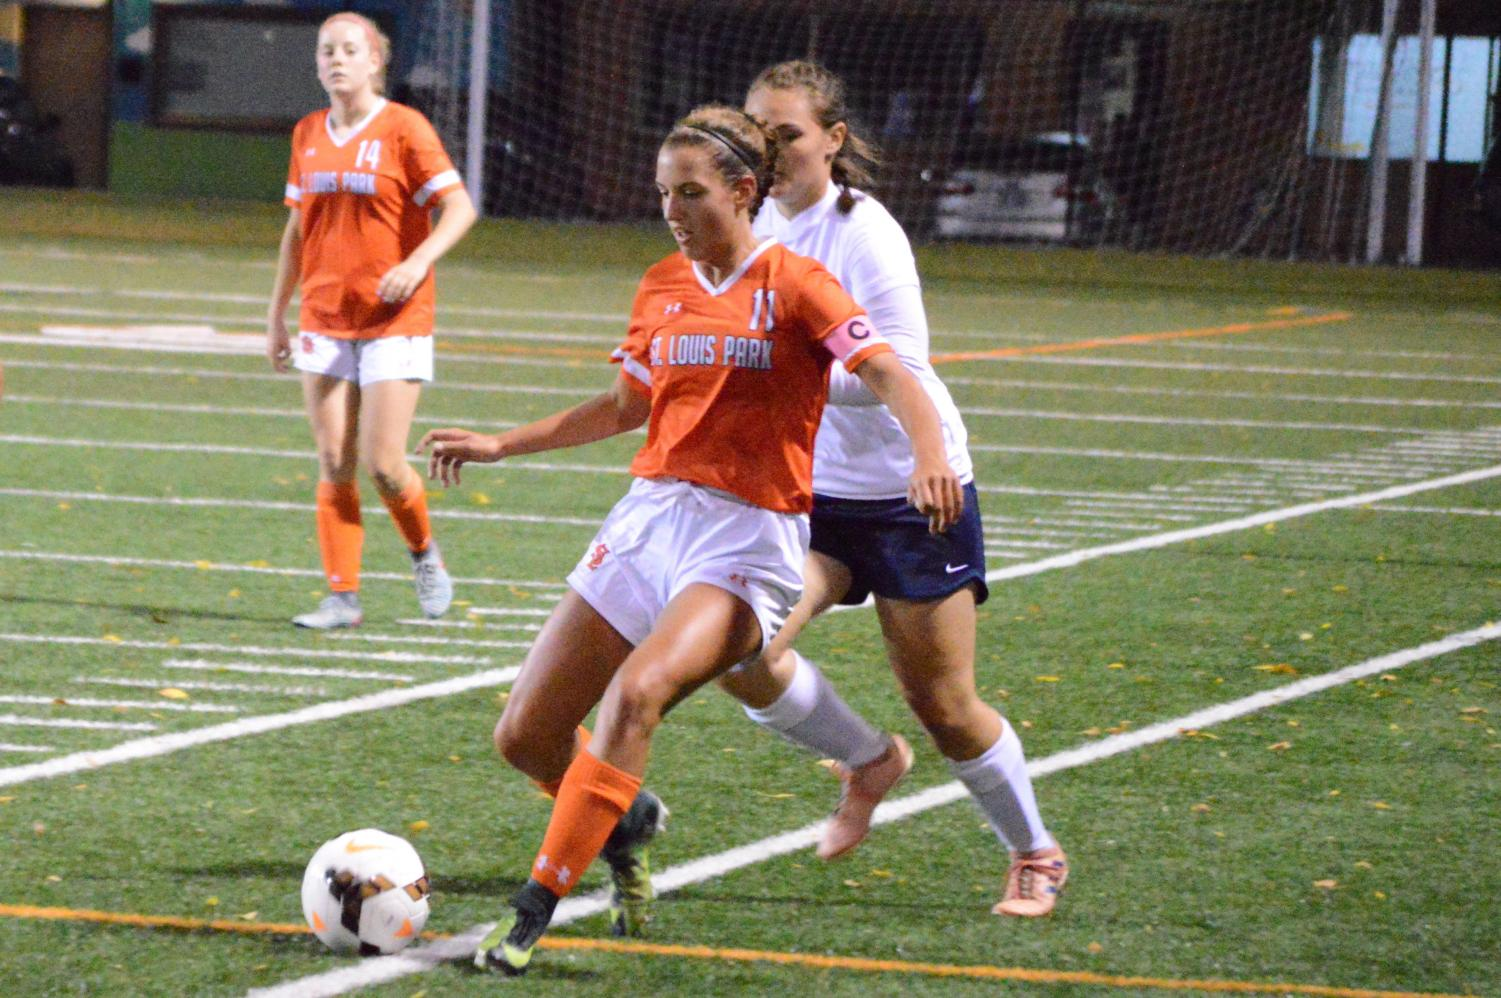 Girls%27+soccer+captain%2C+junior+Ava+Bishop%2C+dribbles+the+ball+along+the+side+lines+toward+the+opponent%27s+goal.+Bishop+played+left+wing+for+the+majority+of+the+game+Sept.+17.